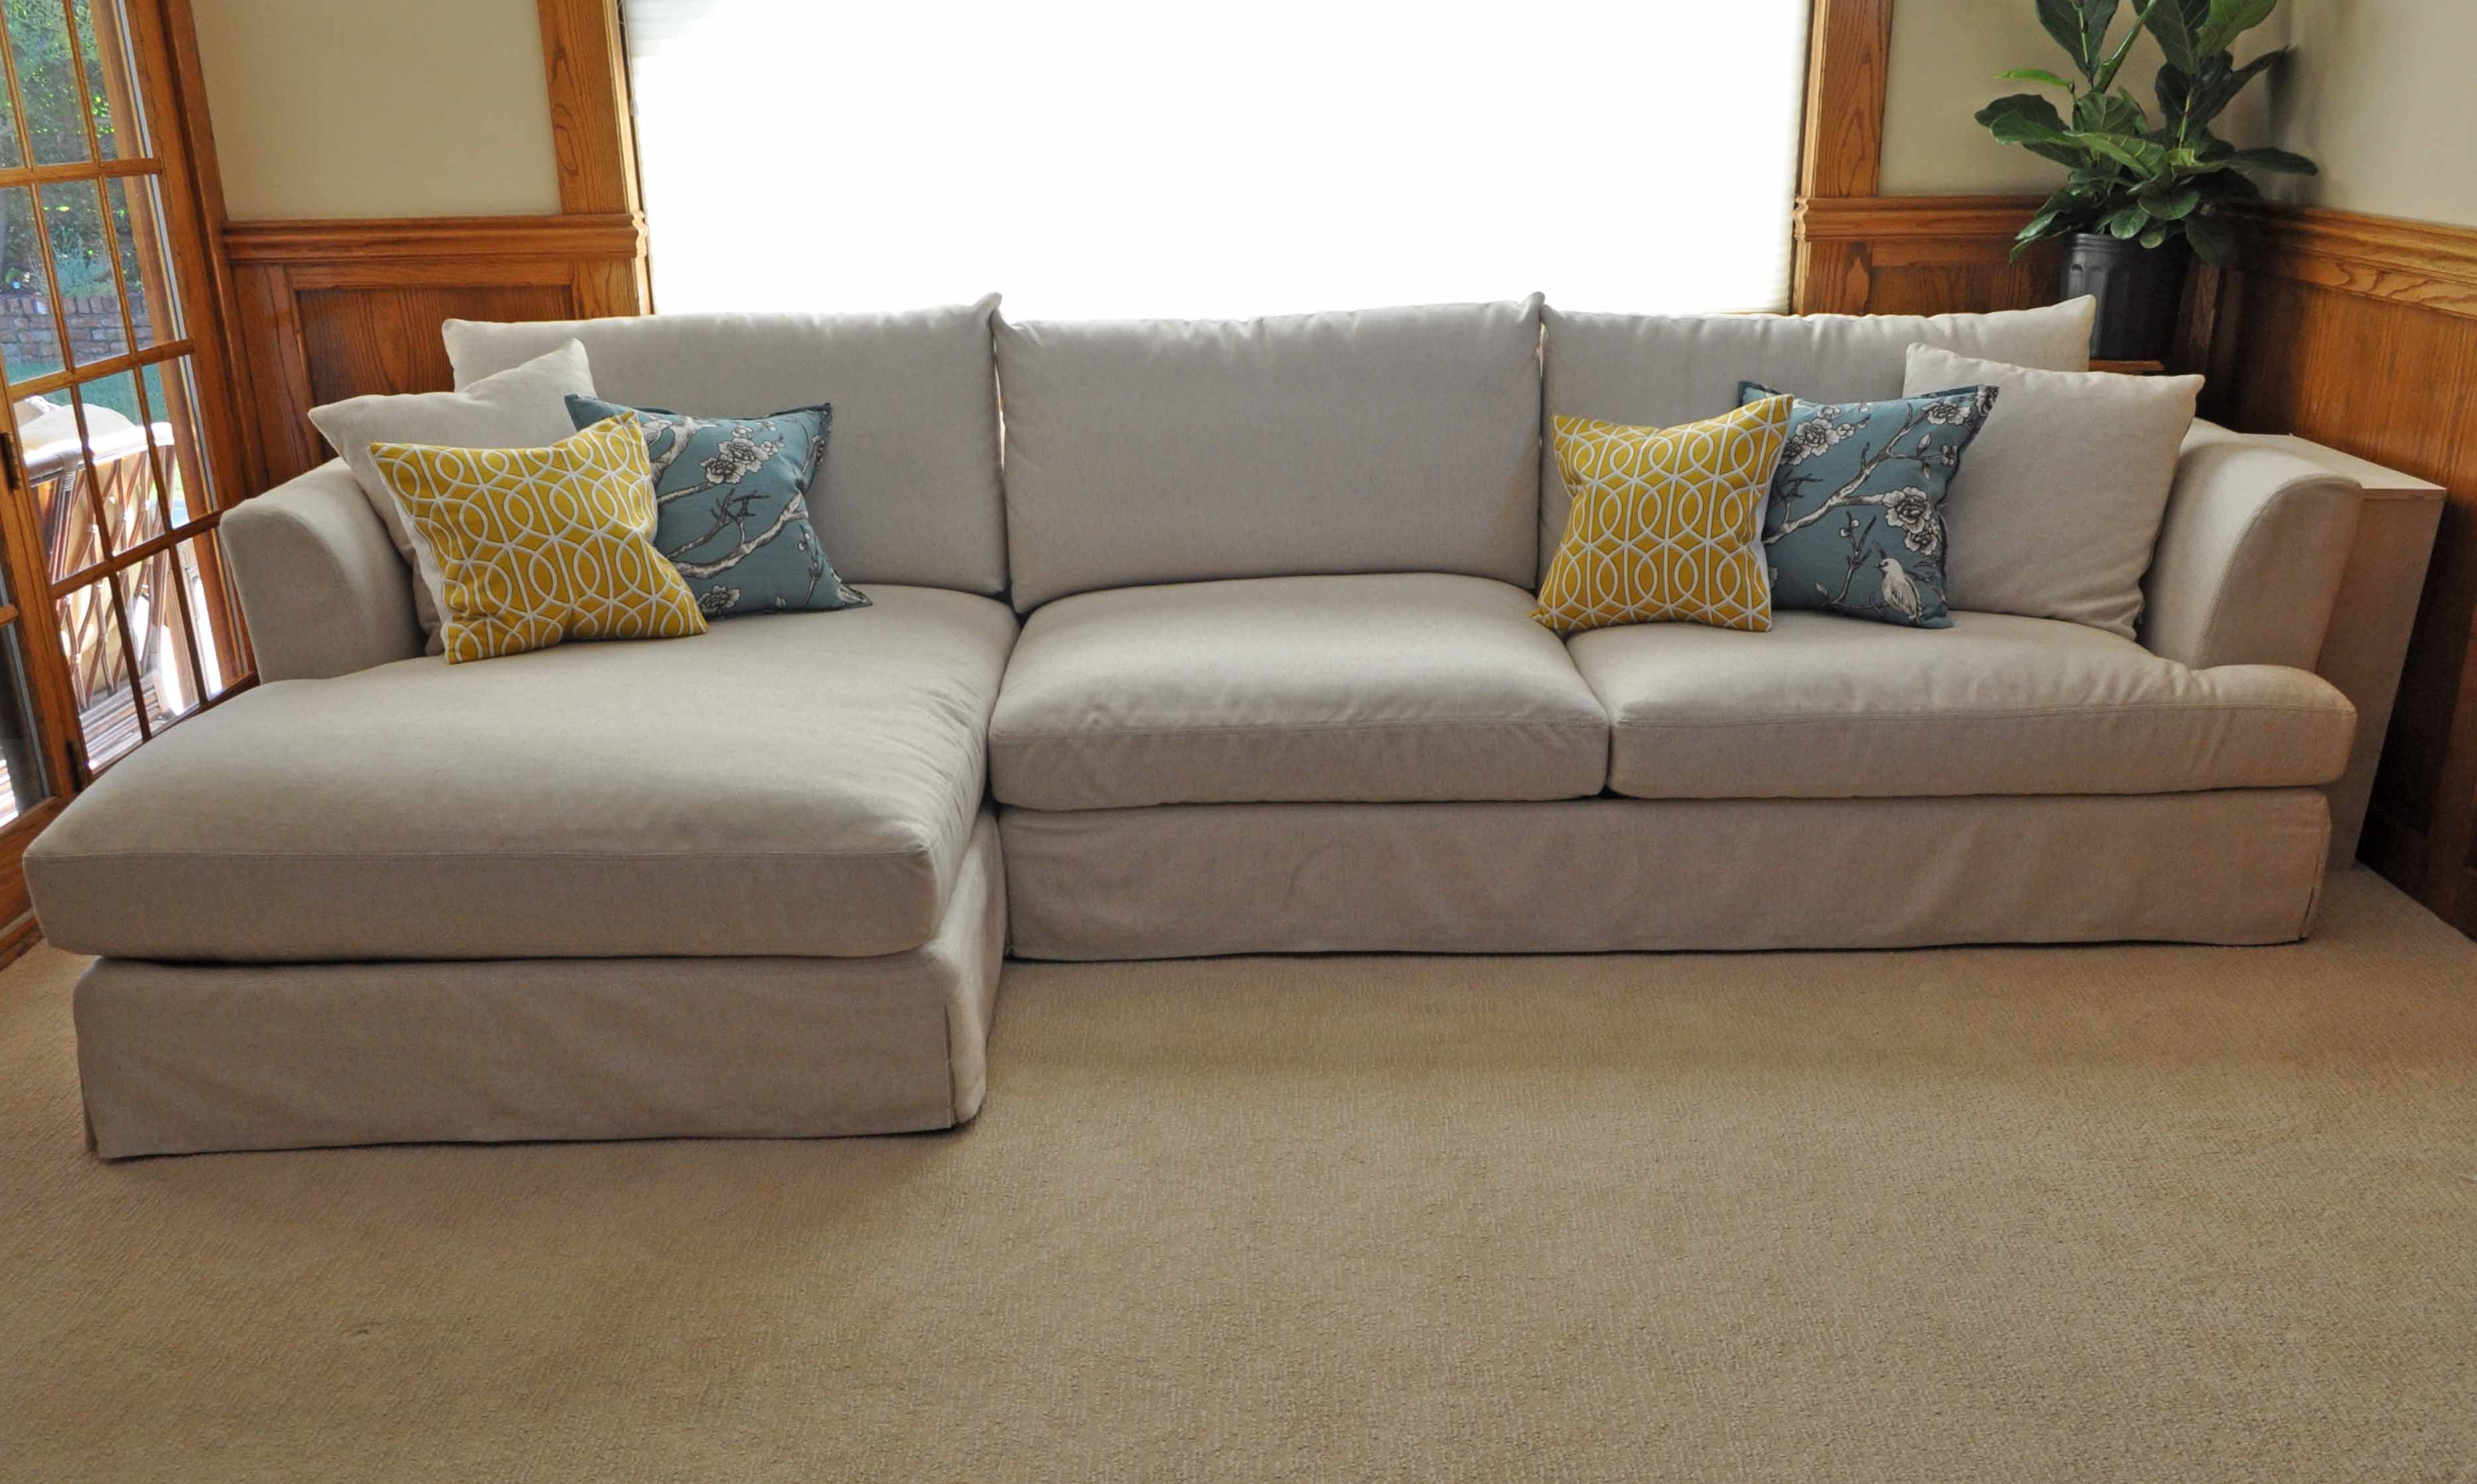 Cream Colored Sofas With Regard To Famous Sleeper Sofa : Comfy Cream Sofa Beige Couch Decor Cream Leather (View 11 of 15)